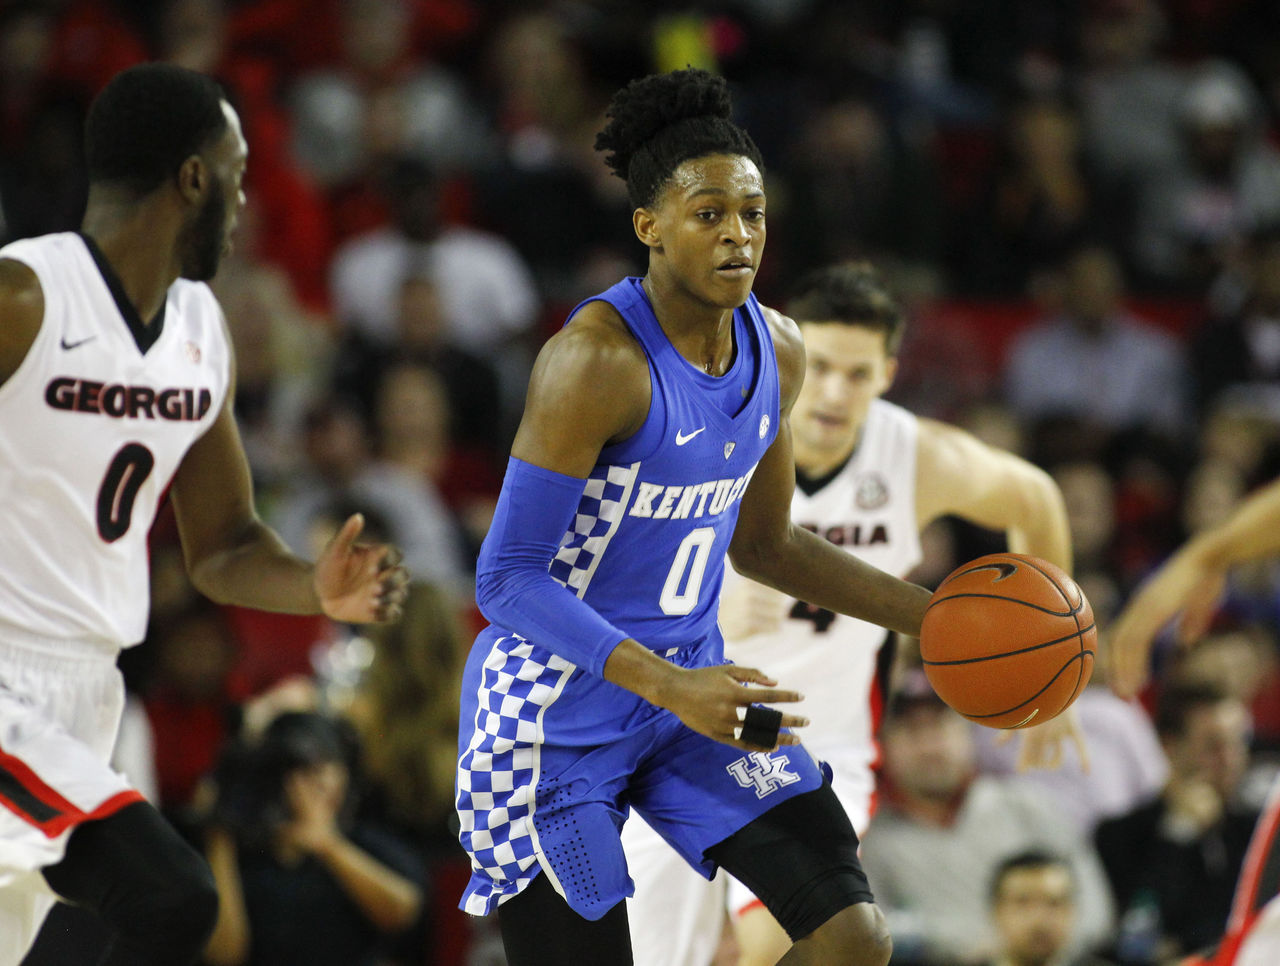 Cropped_2017-02-19t020555z_386005467_nocid_rtrmadp_3_ncaa-basketball-kentucky-at-georgia